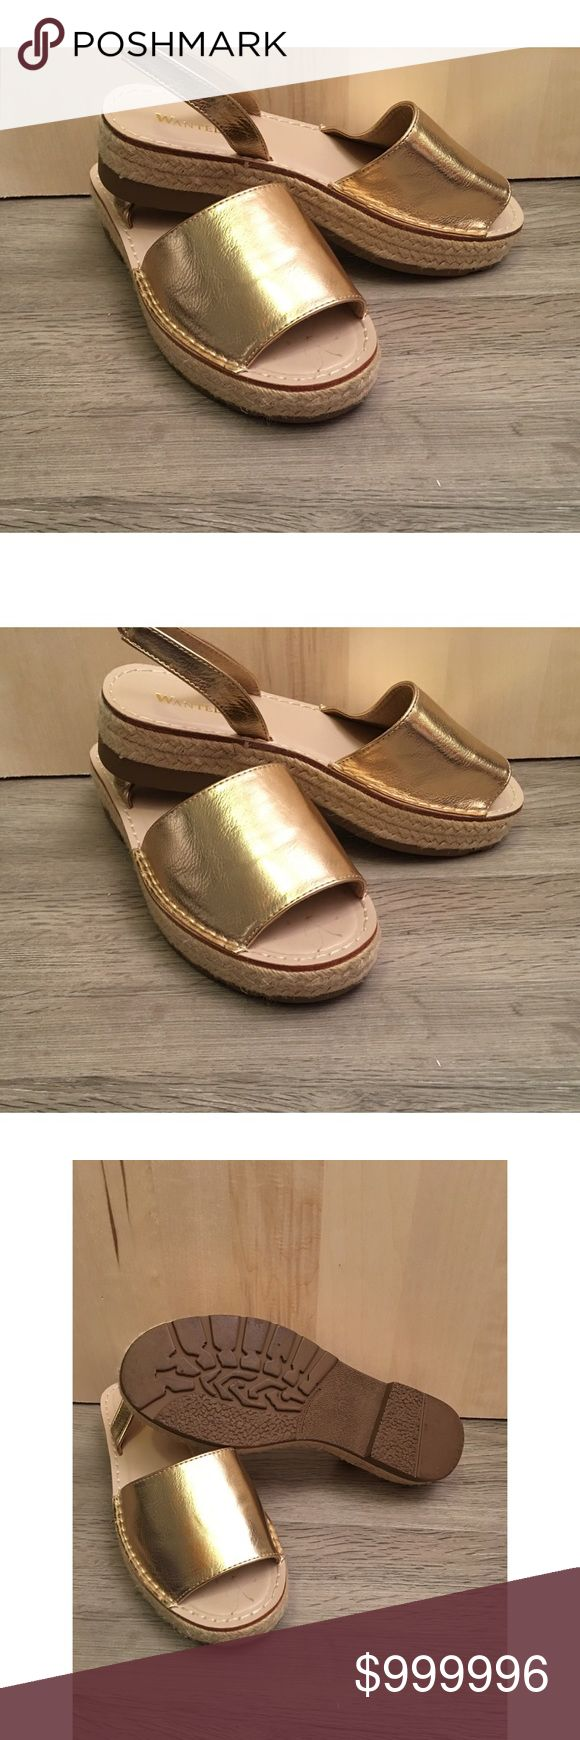 Wanted gold metallic espadrilles Wanted gold metallic espadrilles sandals, worn once practically new... Wanted Shoes Espadrilles